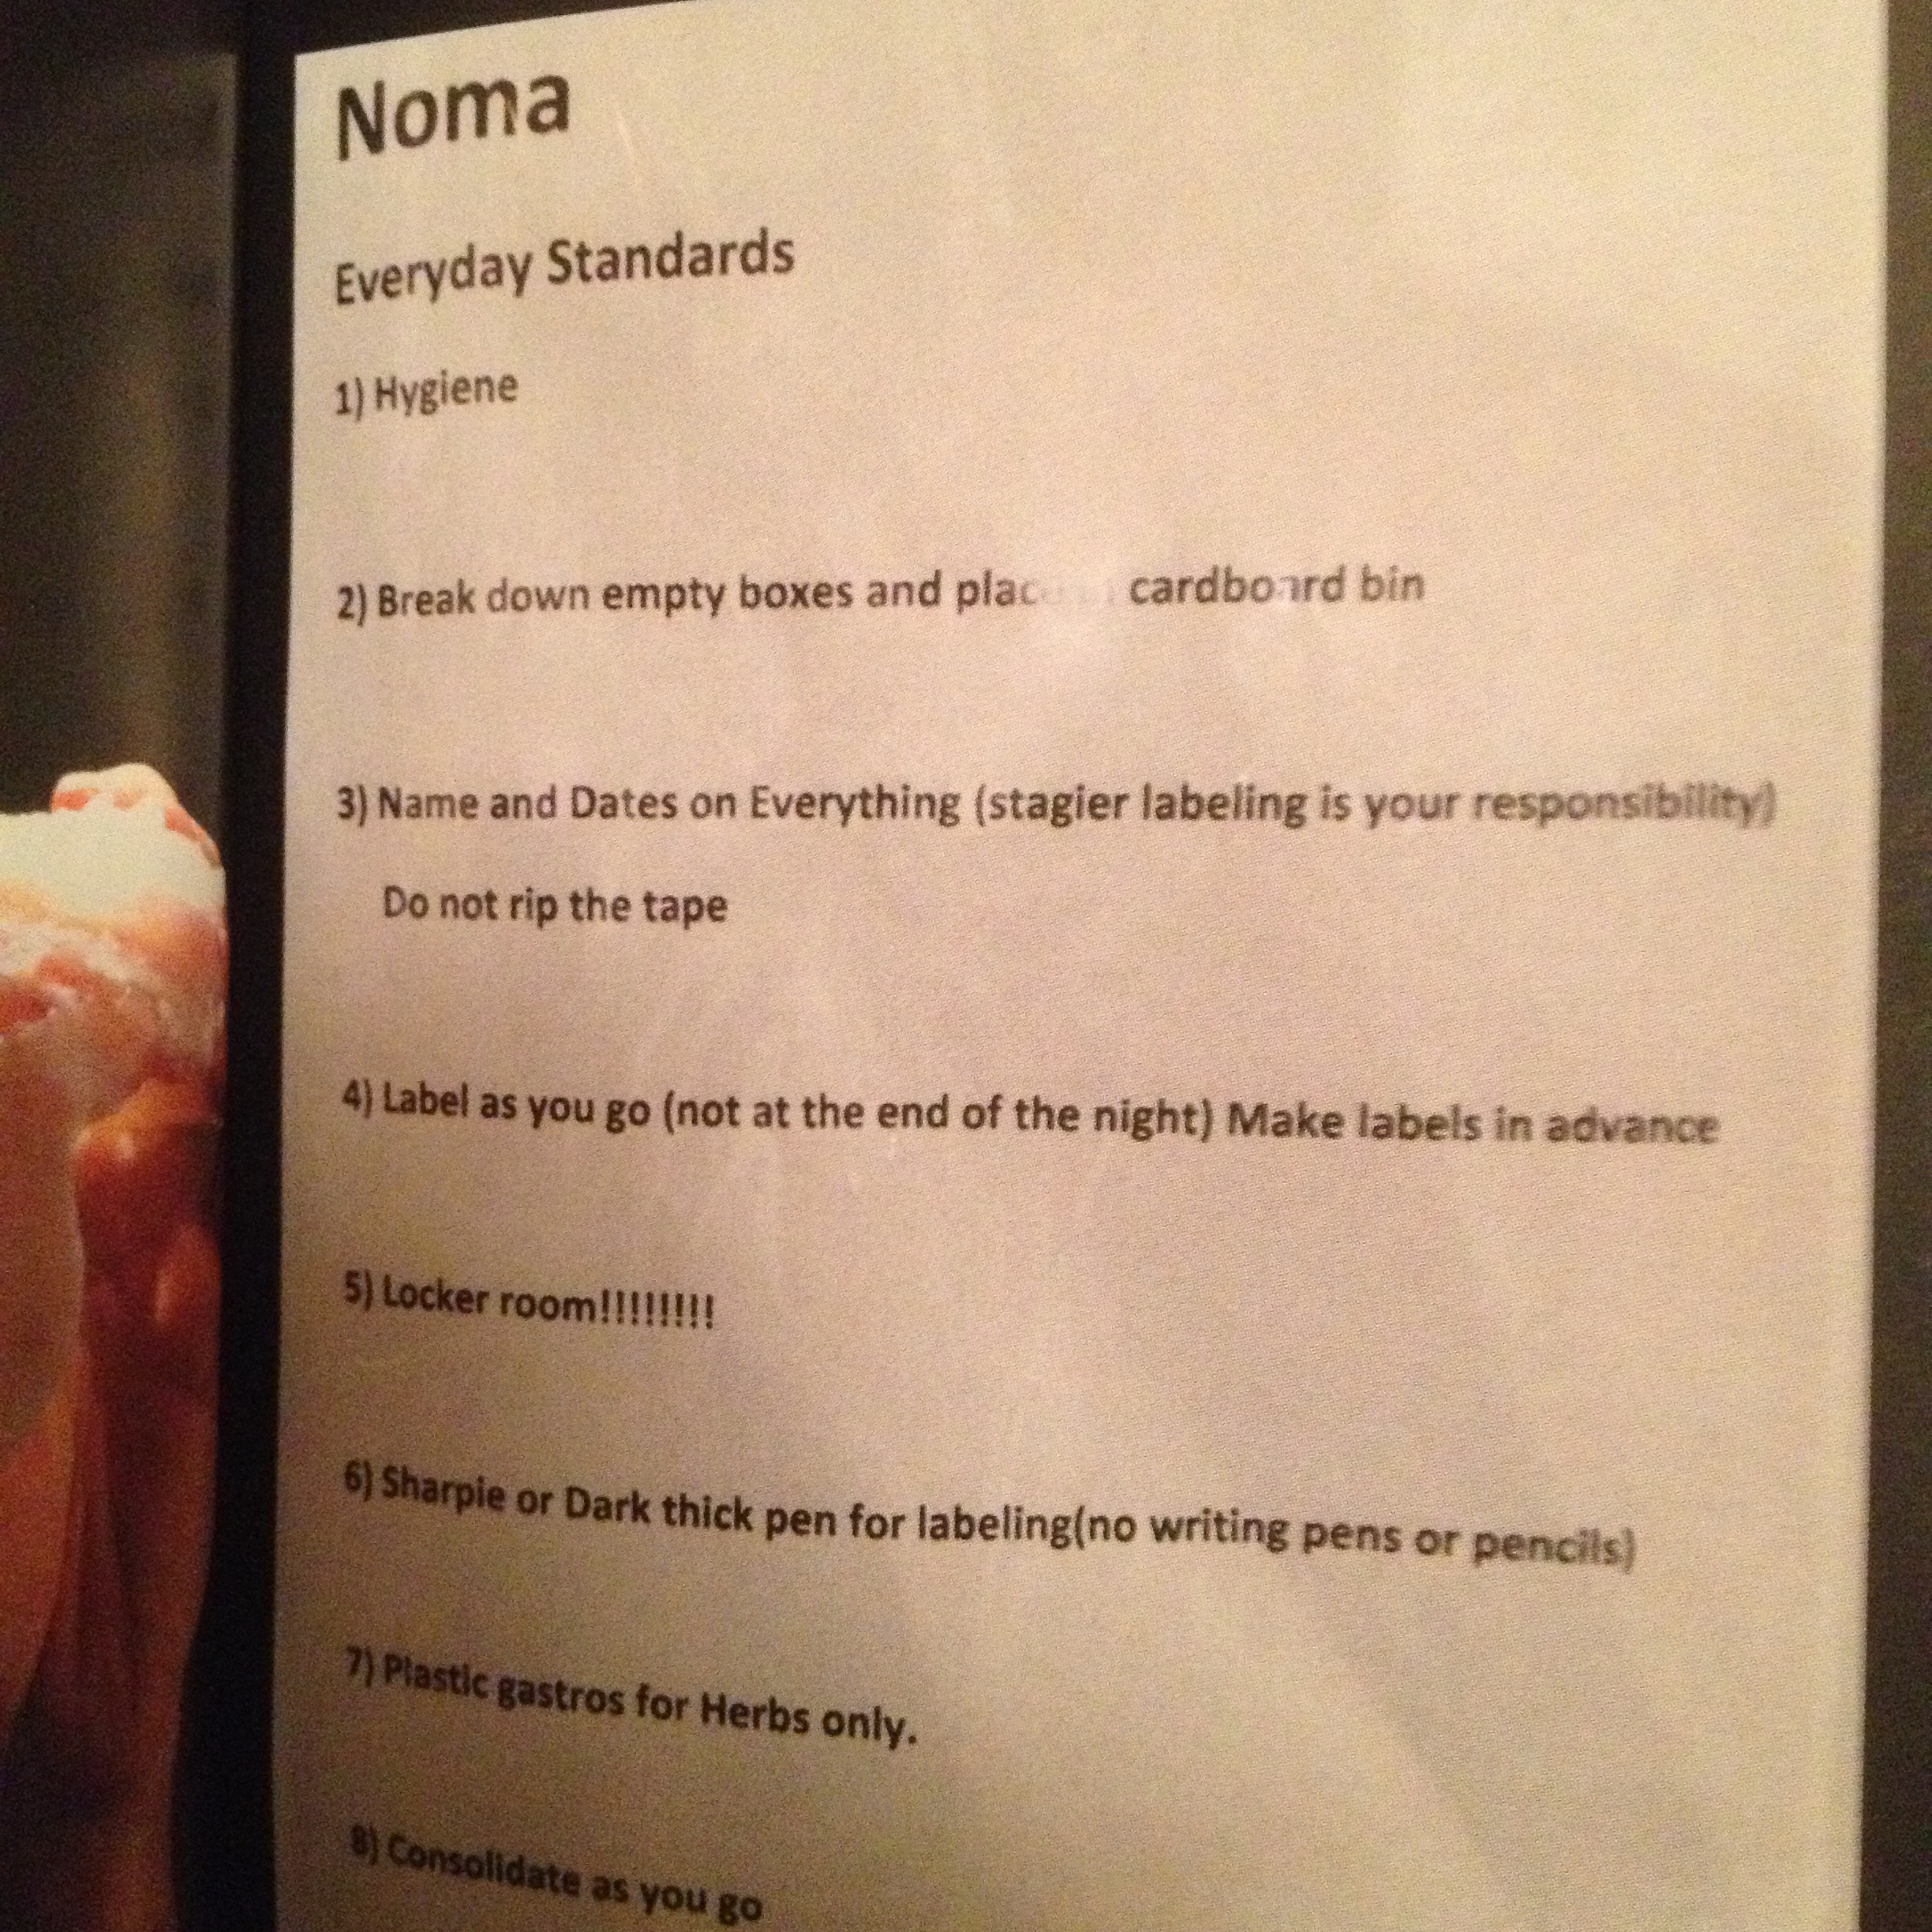 A list of everyday standards expected of chefs at Noma, Copenhagen.